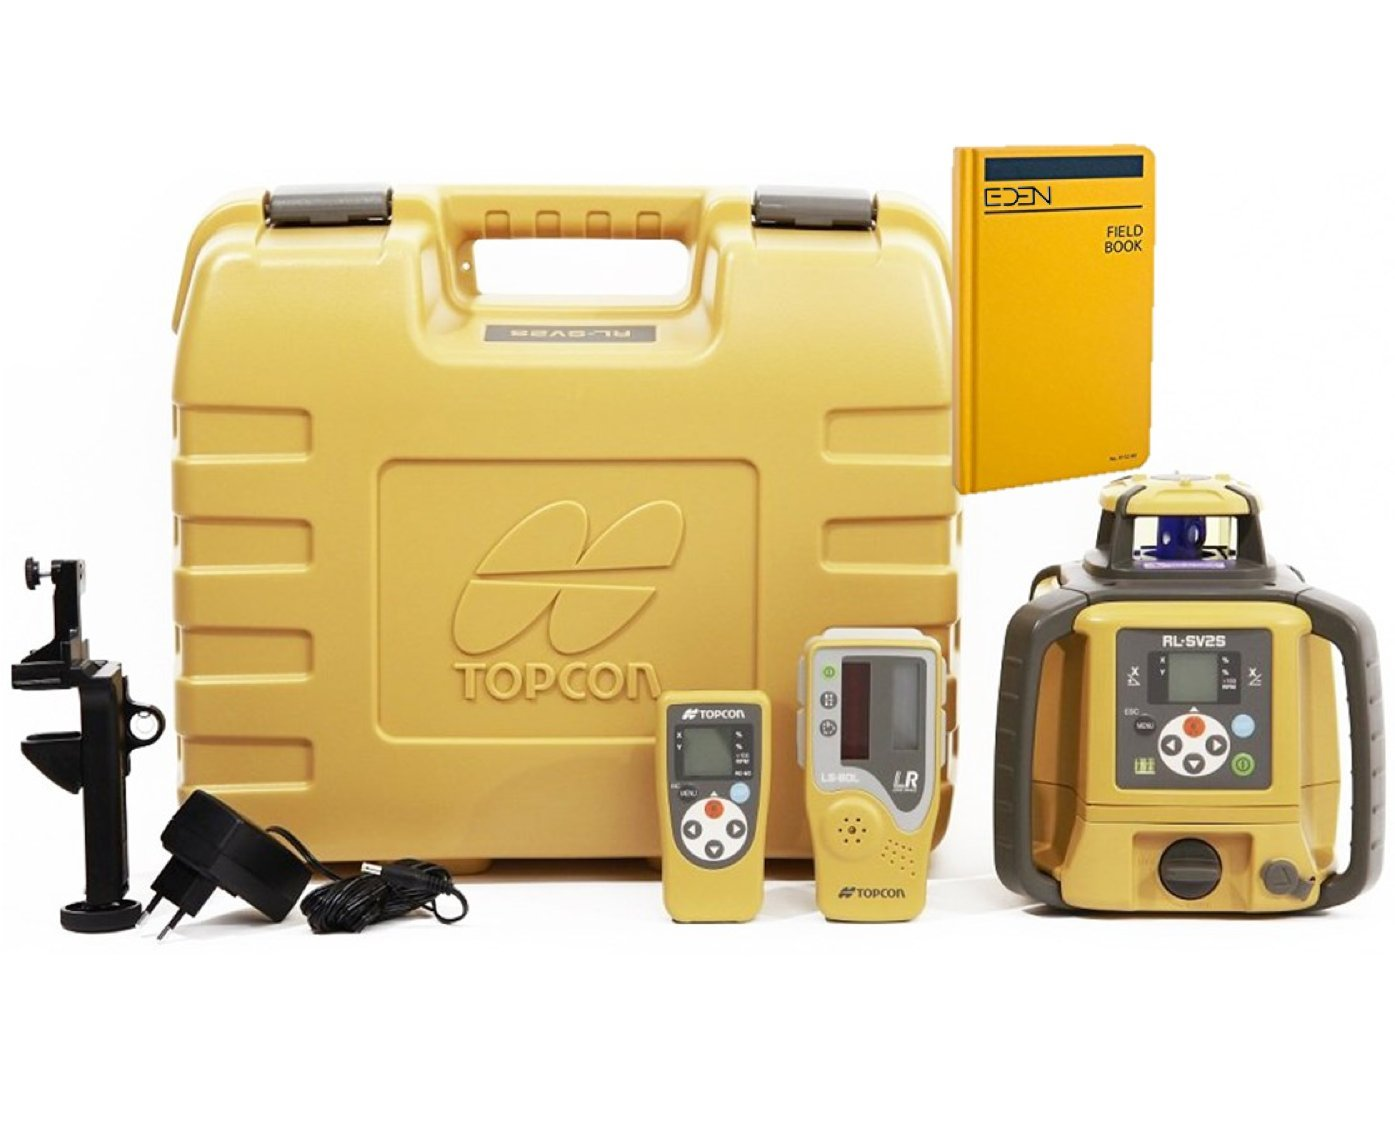 Topcon RL-SV2S Dual Grade Rotary Laser with BONUS EDEN Field Book | IP66 Rating Drop, Dust, Water Resistant | 800m Construction Laser | Includes LS-80L Receiver, Detector Holder, Hard Case by TOPCON (Image #1)